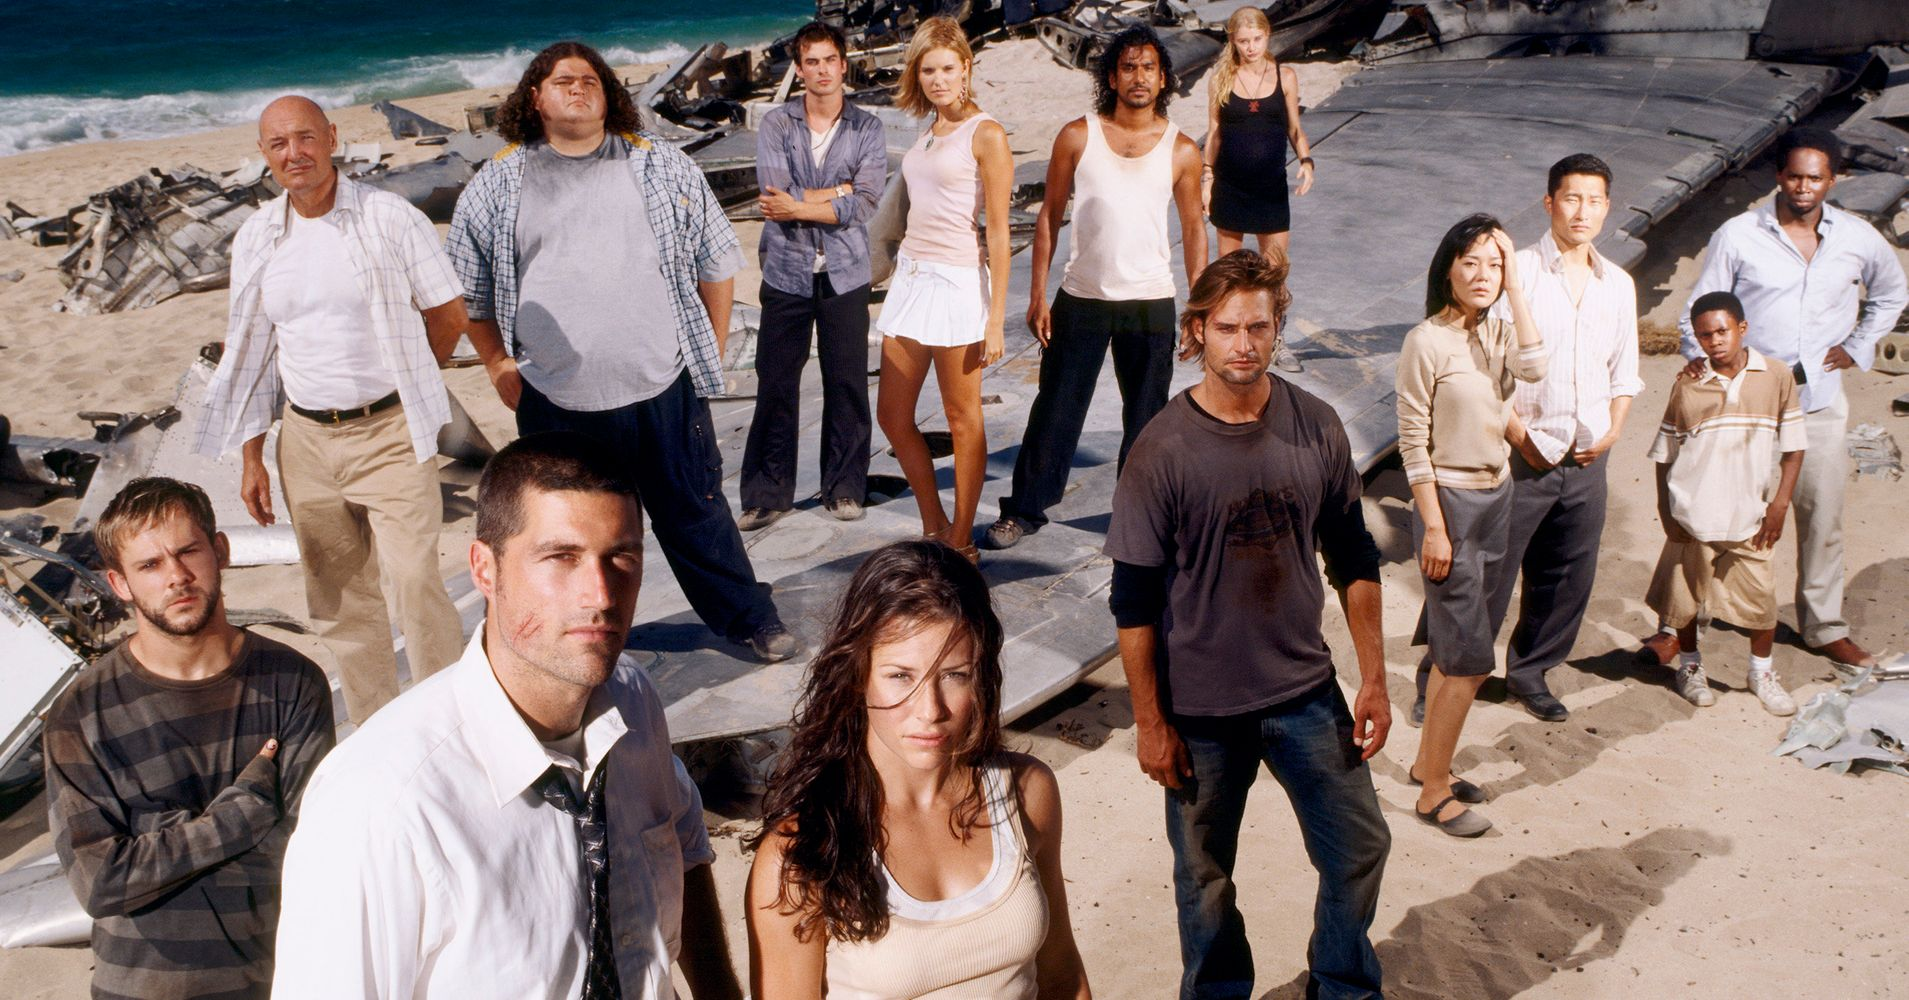 J.J. Abrams and Lost Producers Apologize to Evangeline Lilly